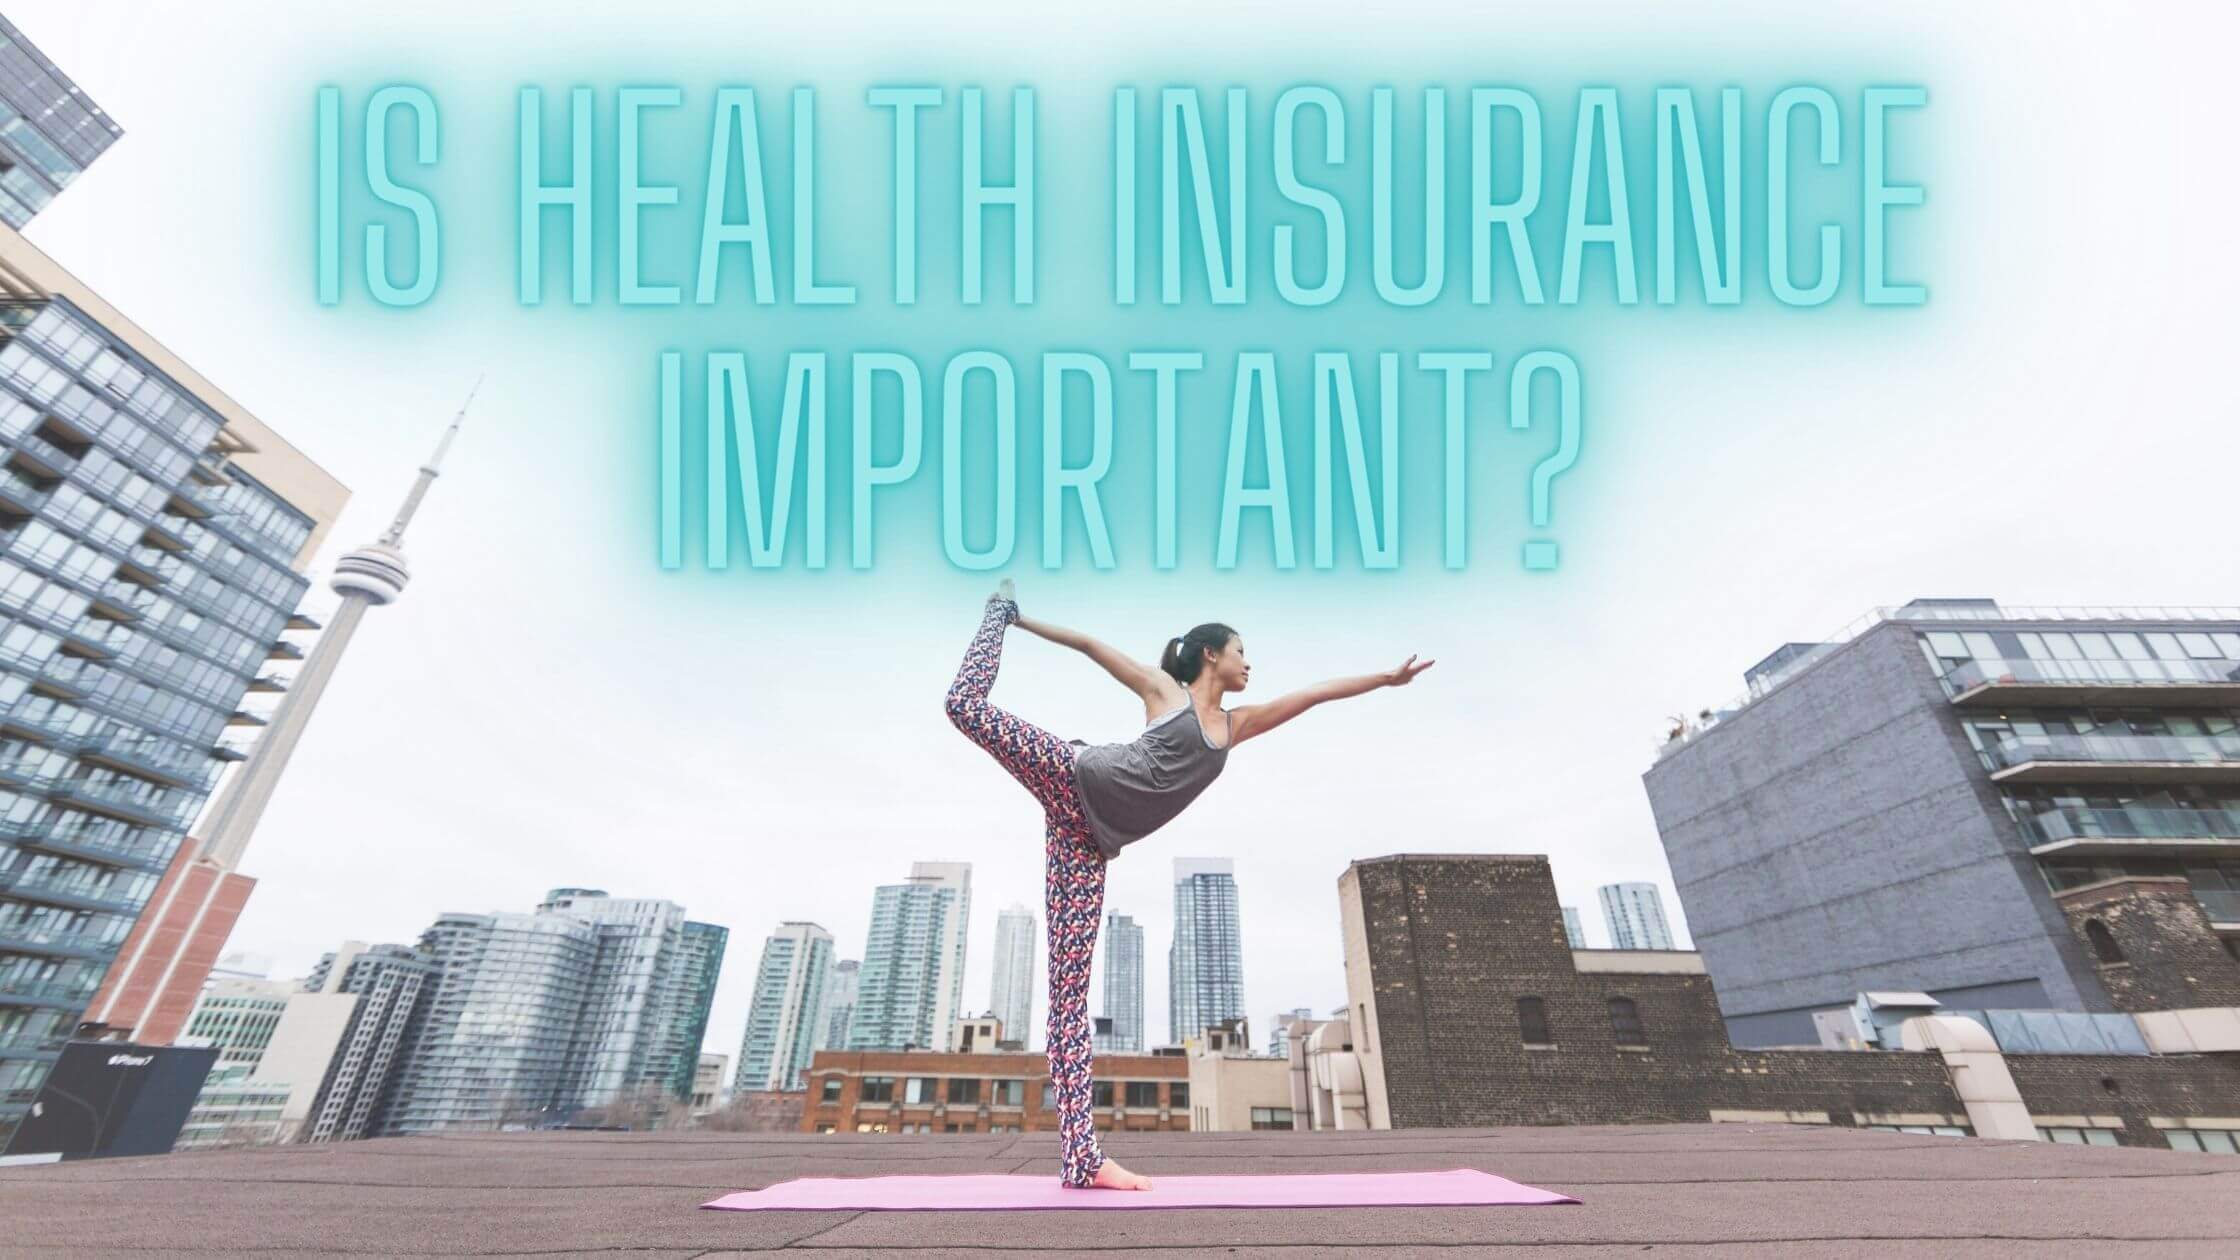 Is Health Insurance Important?